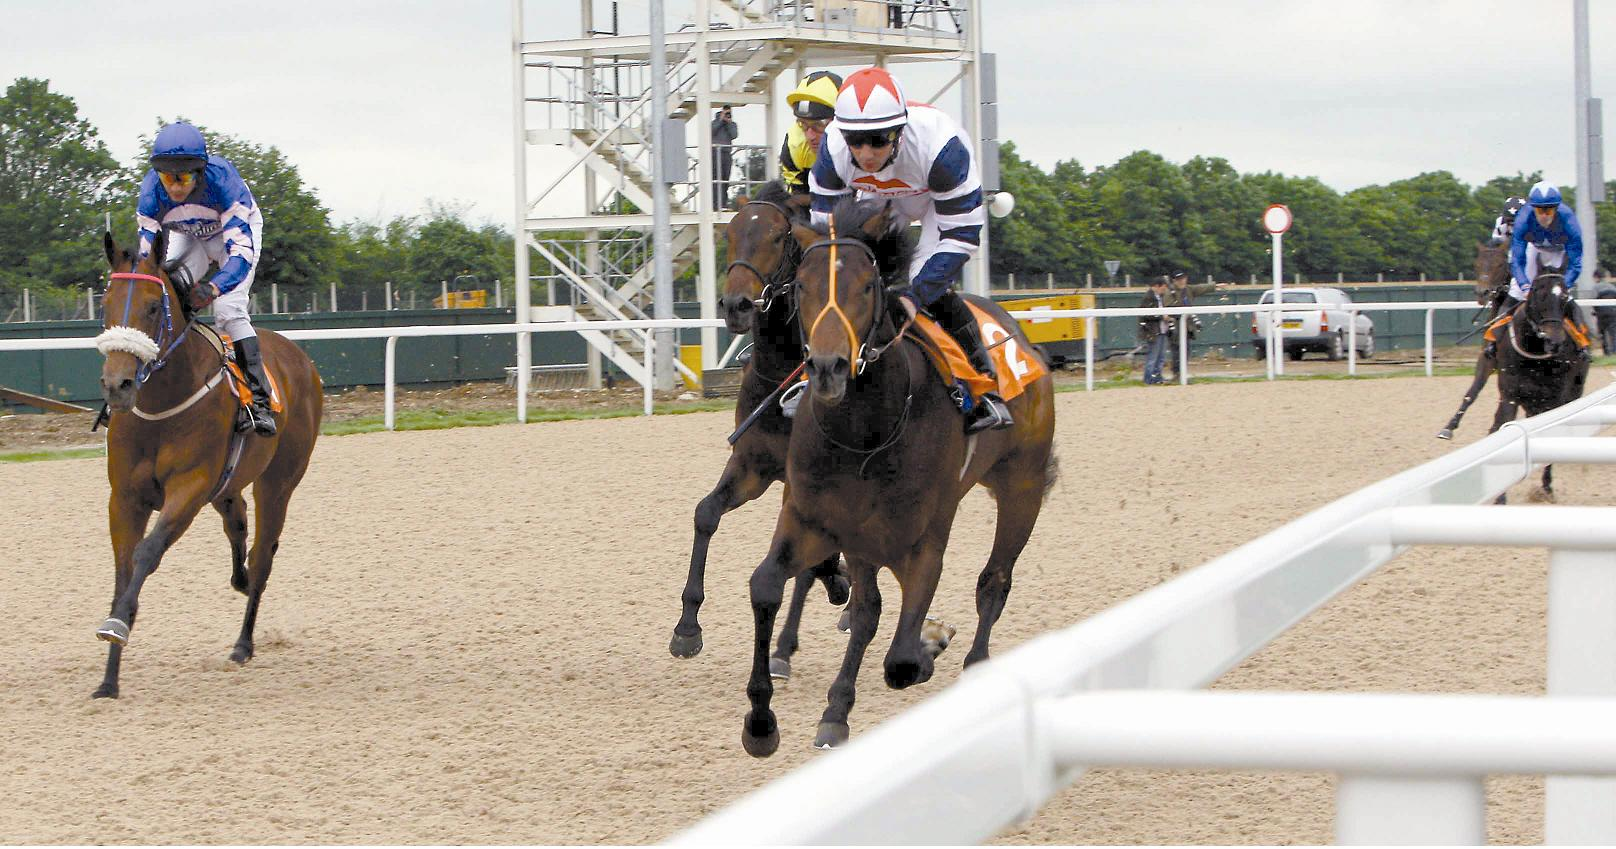 Governing body considering third attempt to bring horse racing back to Great Leighs